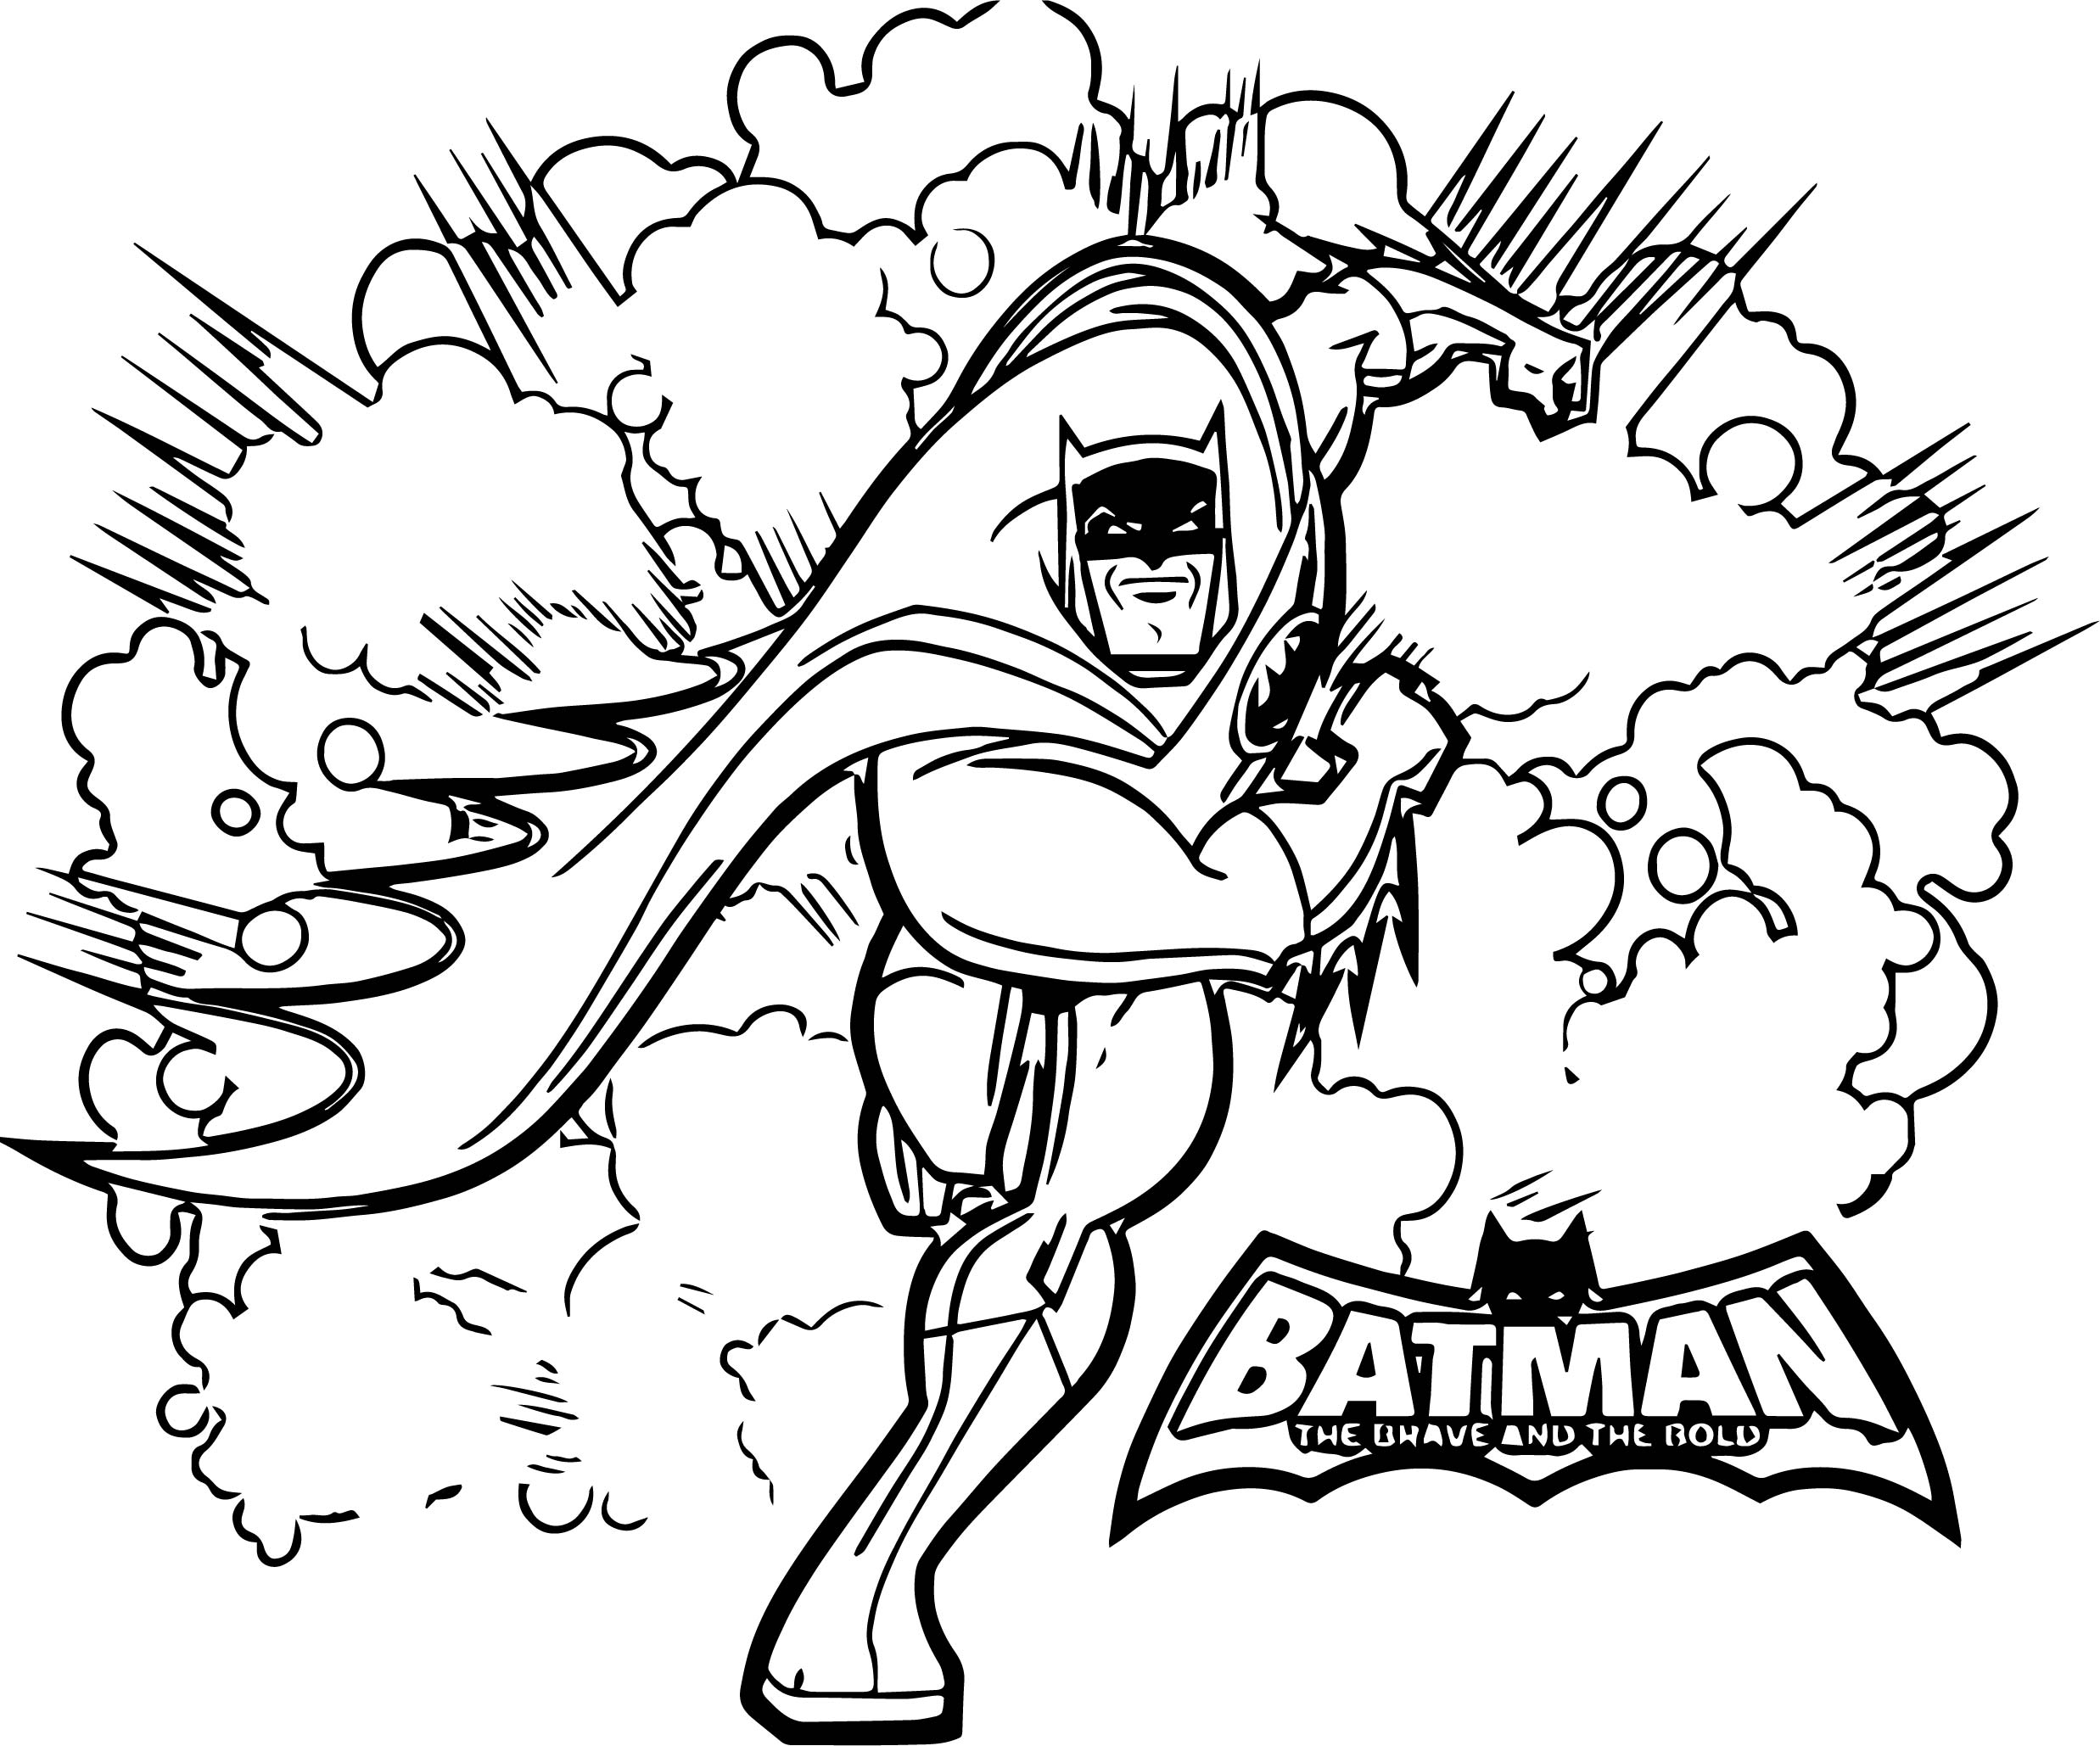 Batman Vs Superman Coloring Pages - Coloring Home